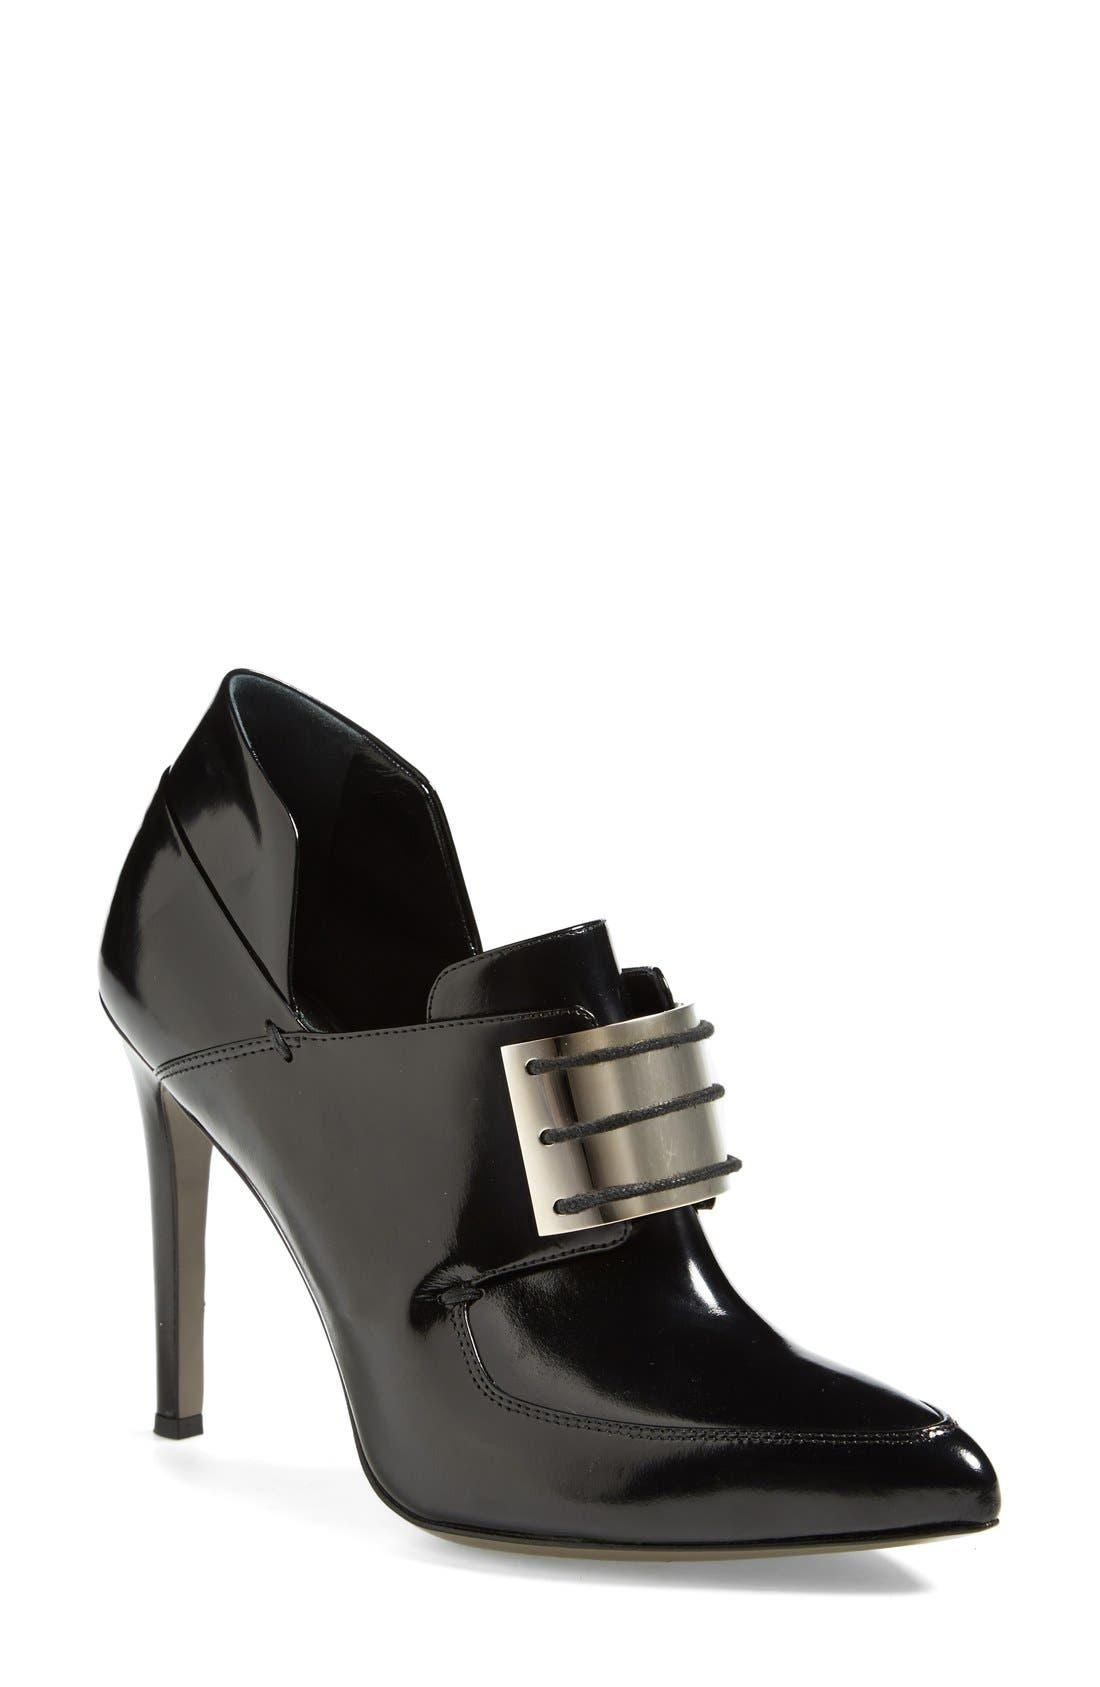 Alternate Image 1 Selected - Jason Wu Metal Plate Lace-Up Leather Loafer Bootie (Women)